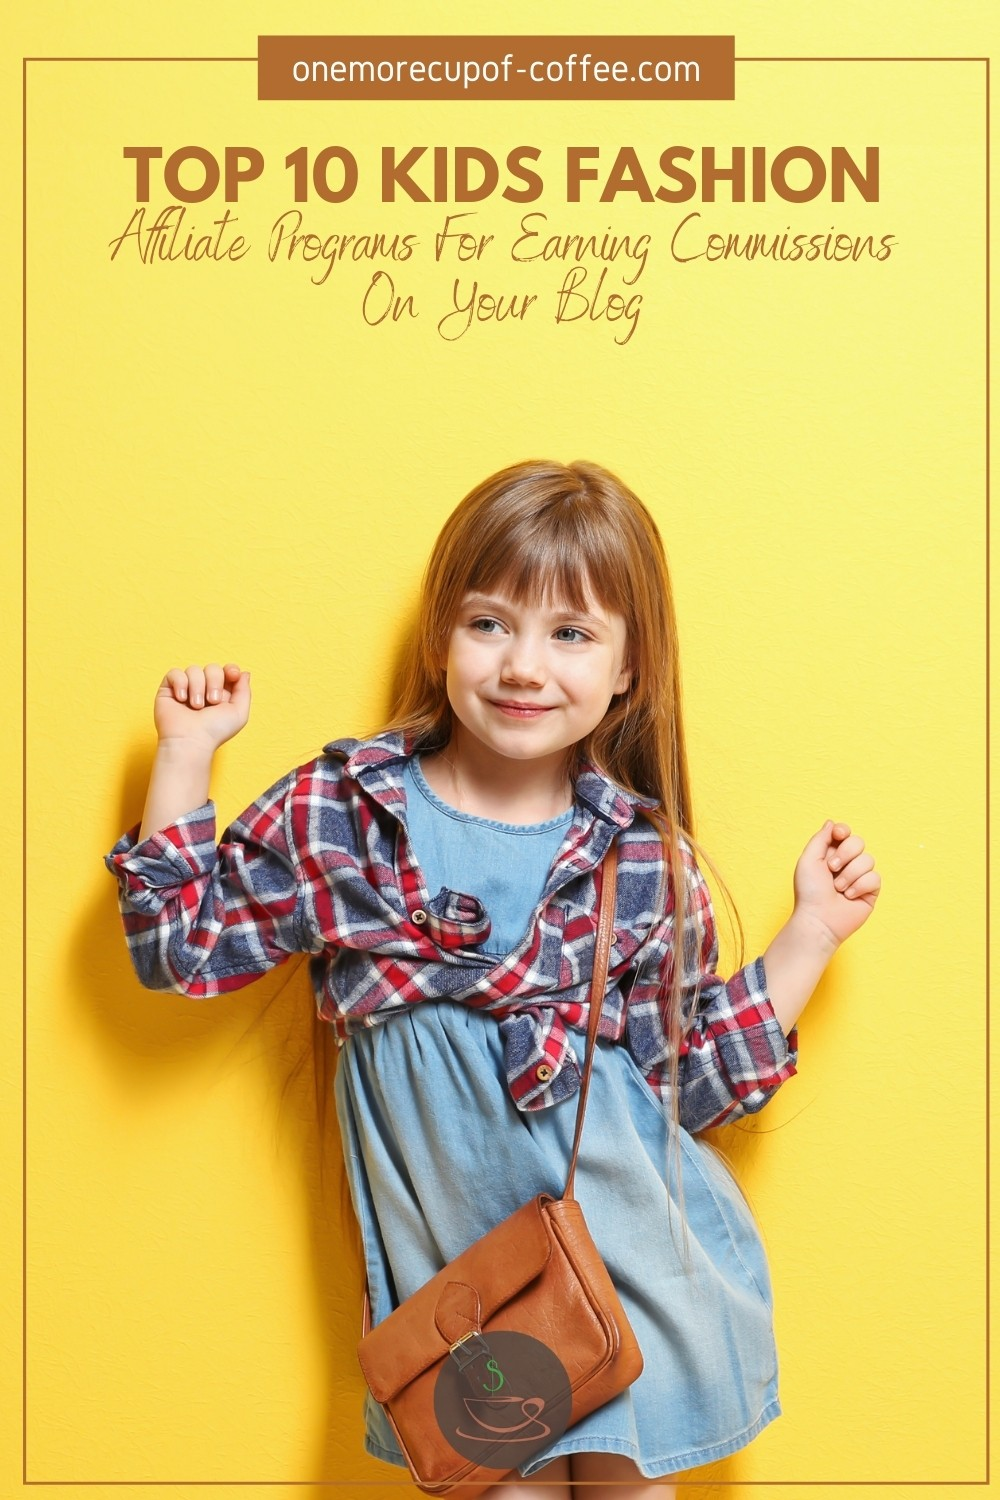 """a smiling little girl sporting a denim blue dress layered with a plaid long sleeves, and brown shoulder bag, posing against a yellow background, with text ovelay """"Top 10 Kids Fashion Affiliate Programs For Earning Commissions On Your Blog"""""""